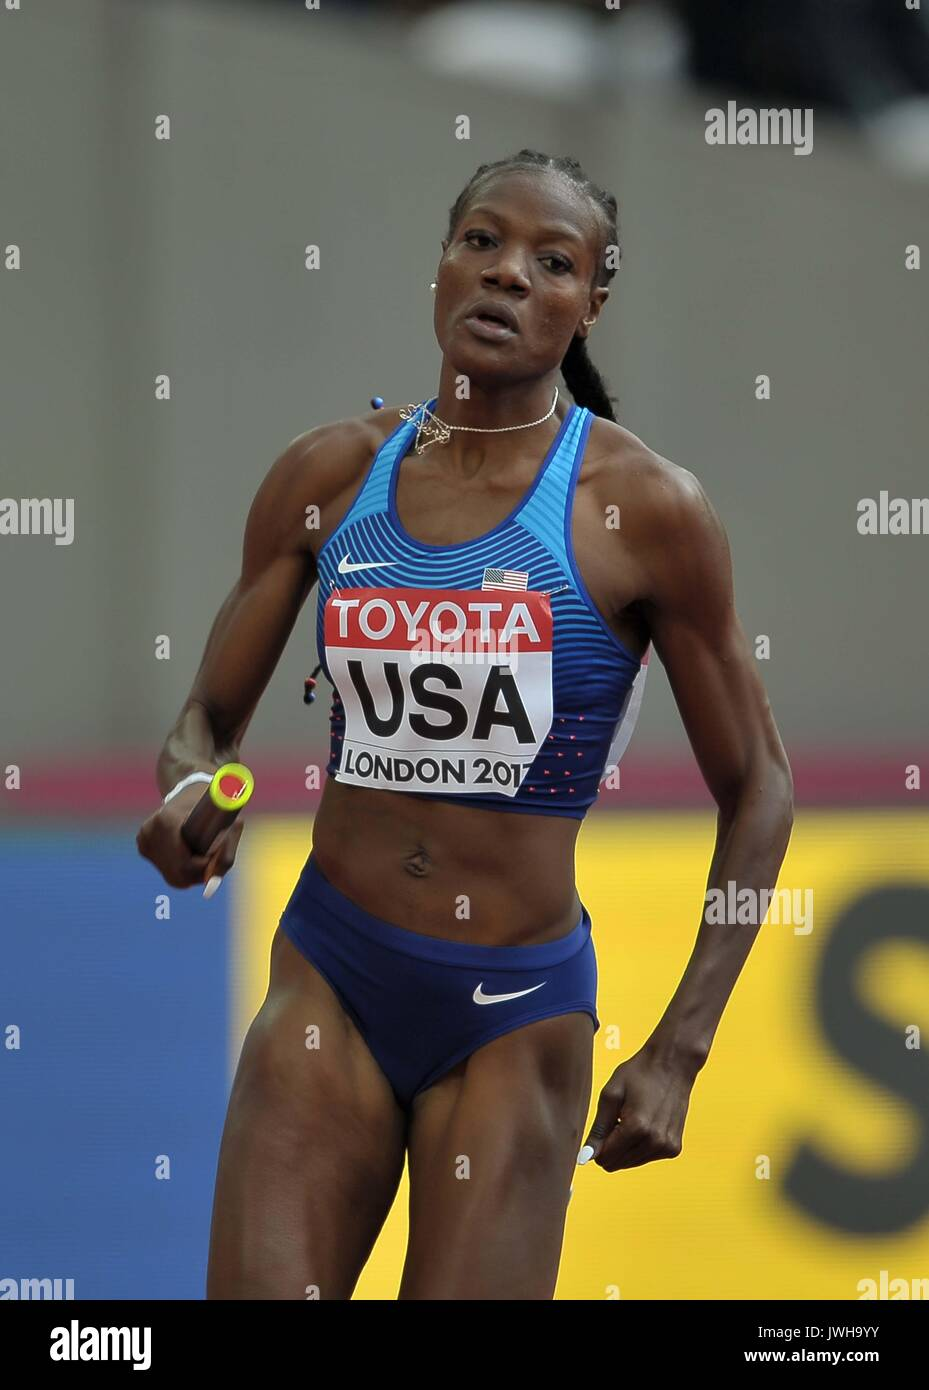 Lonodn, UK. 12 Aug, 2017. Shakima Wimbley (USA) in the womens 4 x 400m relay. IAAF world athletics championships. London Olympic stadium. Queen Elizabeth Olympic park. Stratford. London. UK. 12/08/2017. Credit: Sport In Pictures/Alamy Live News - Stock Image